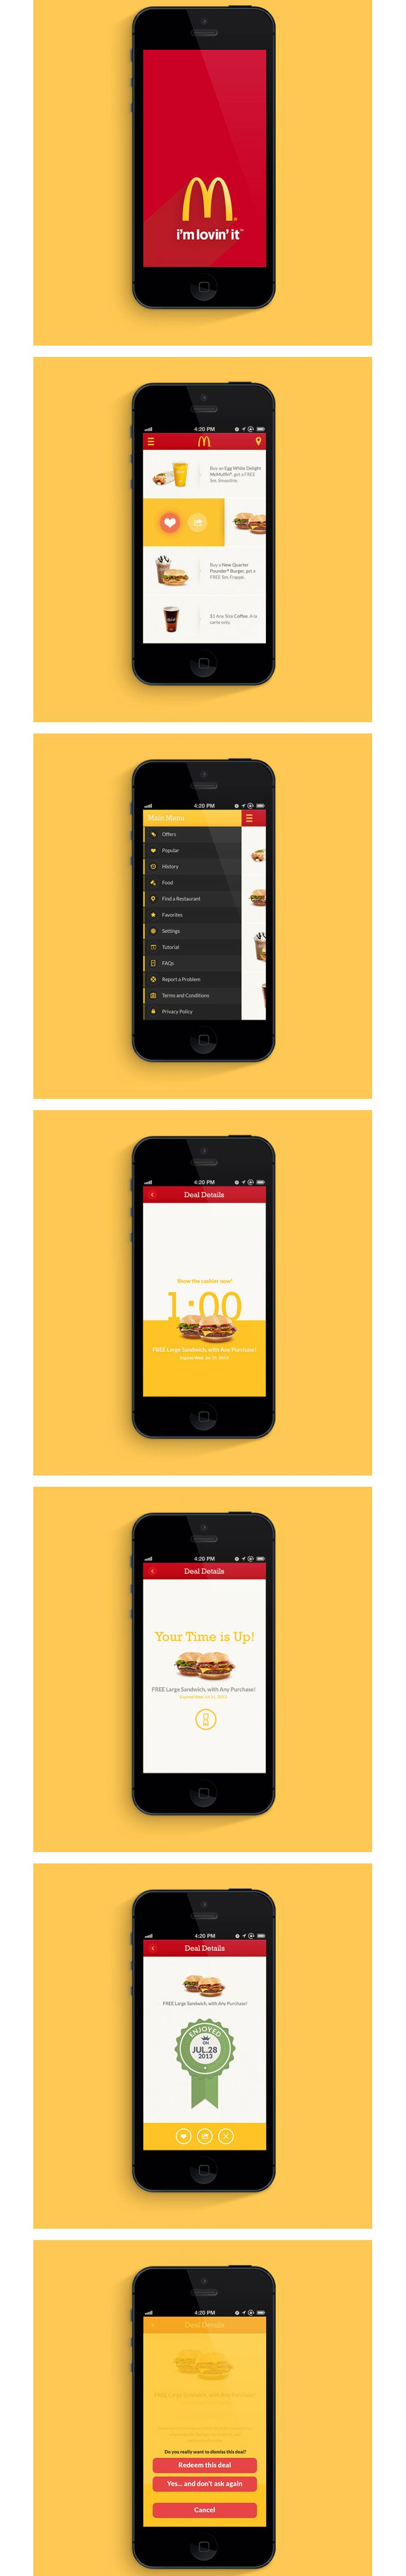 Mc Donald's McD App. If you like UX, design, or design thinking, check out theuxblog.com